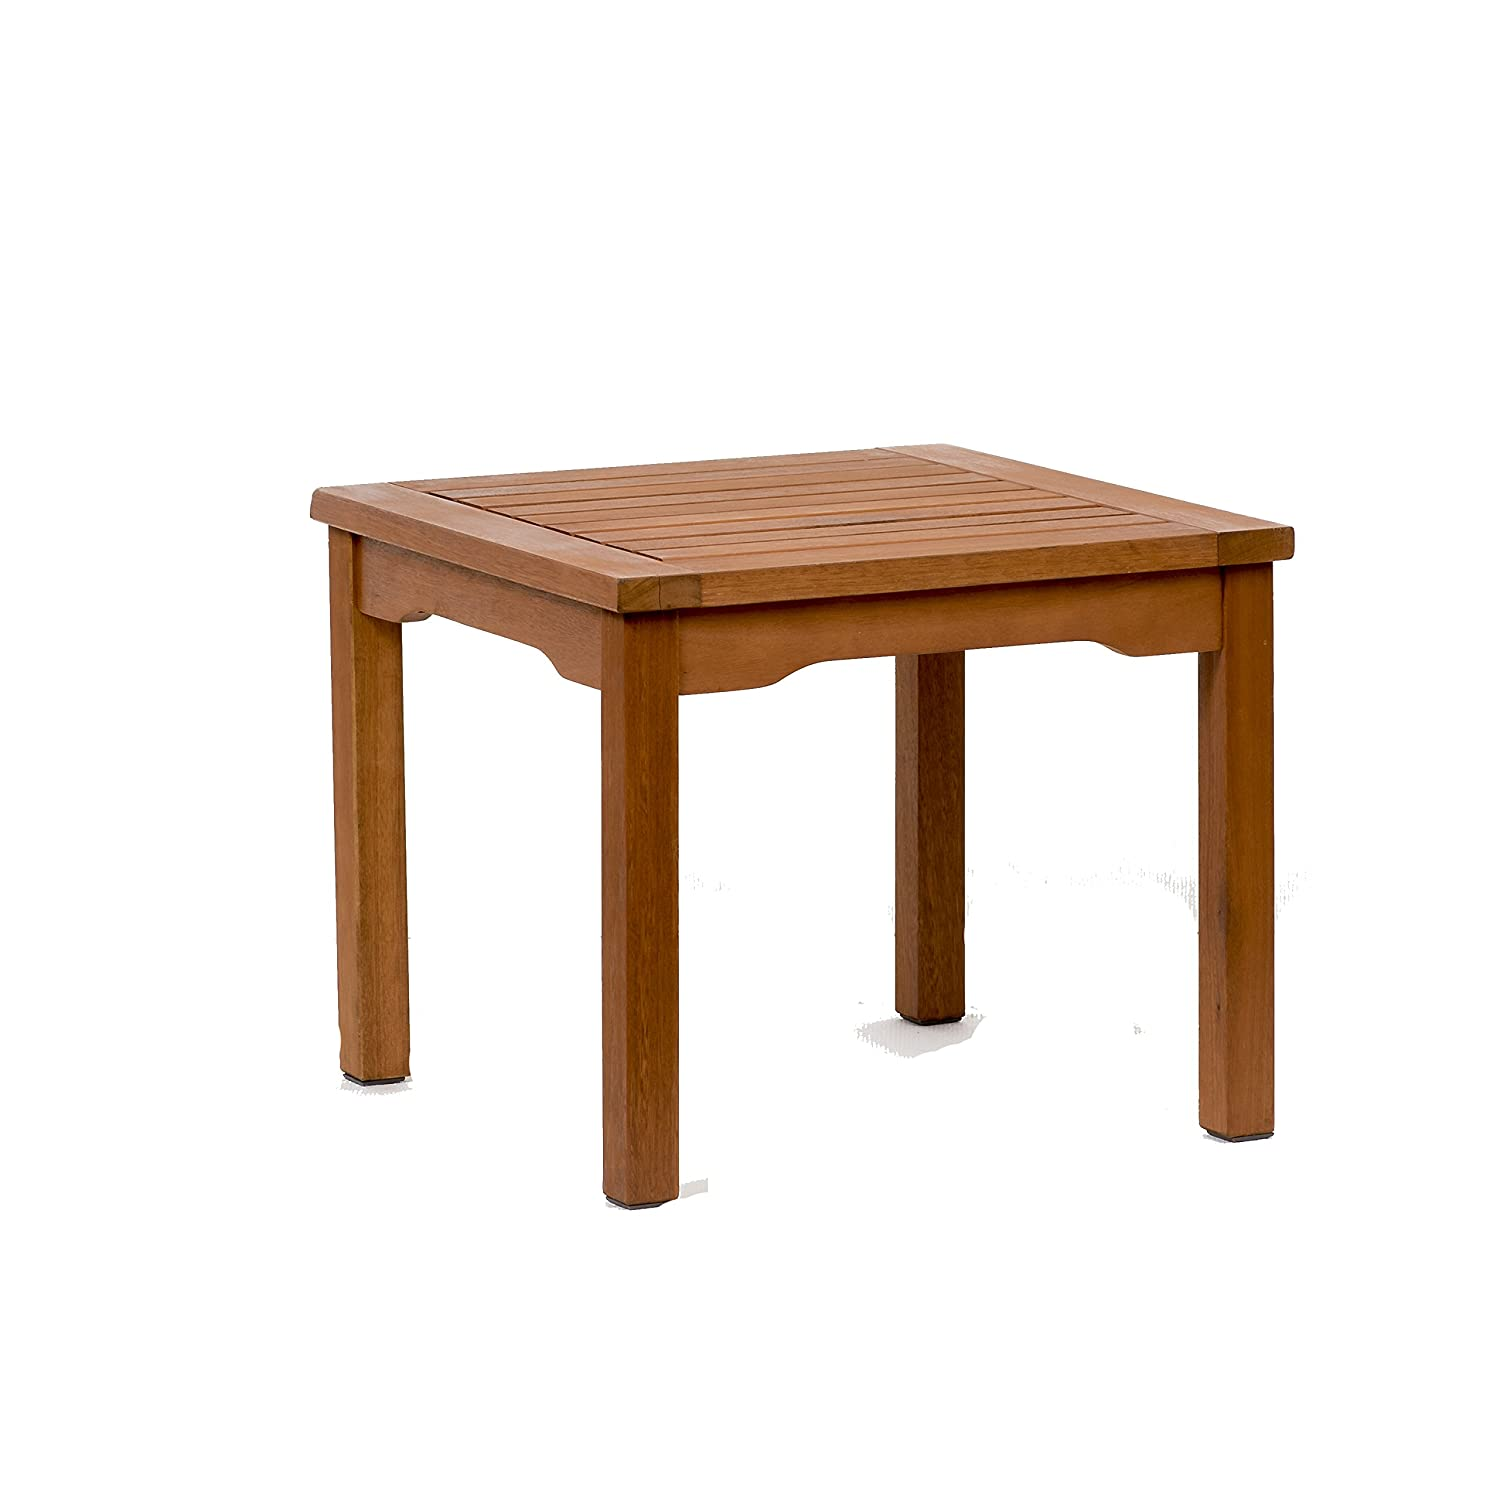 Amazon com amazonia square and durable side table super quality eucalyptus wood perfect for patio and backayard garden outdoor